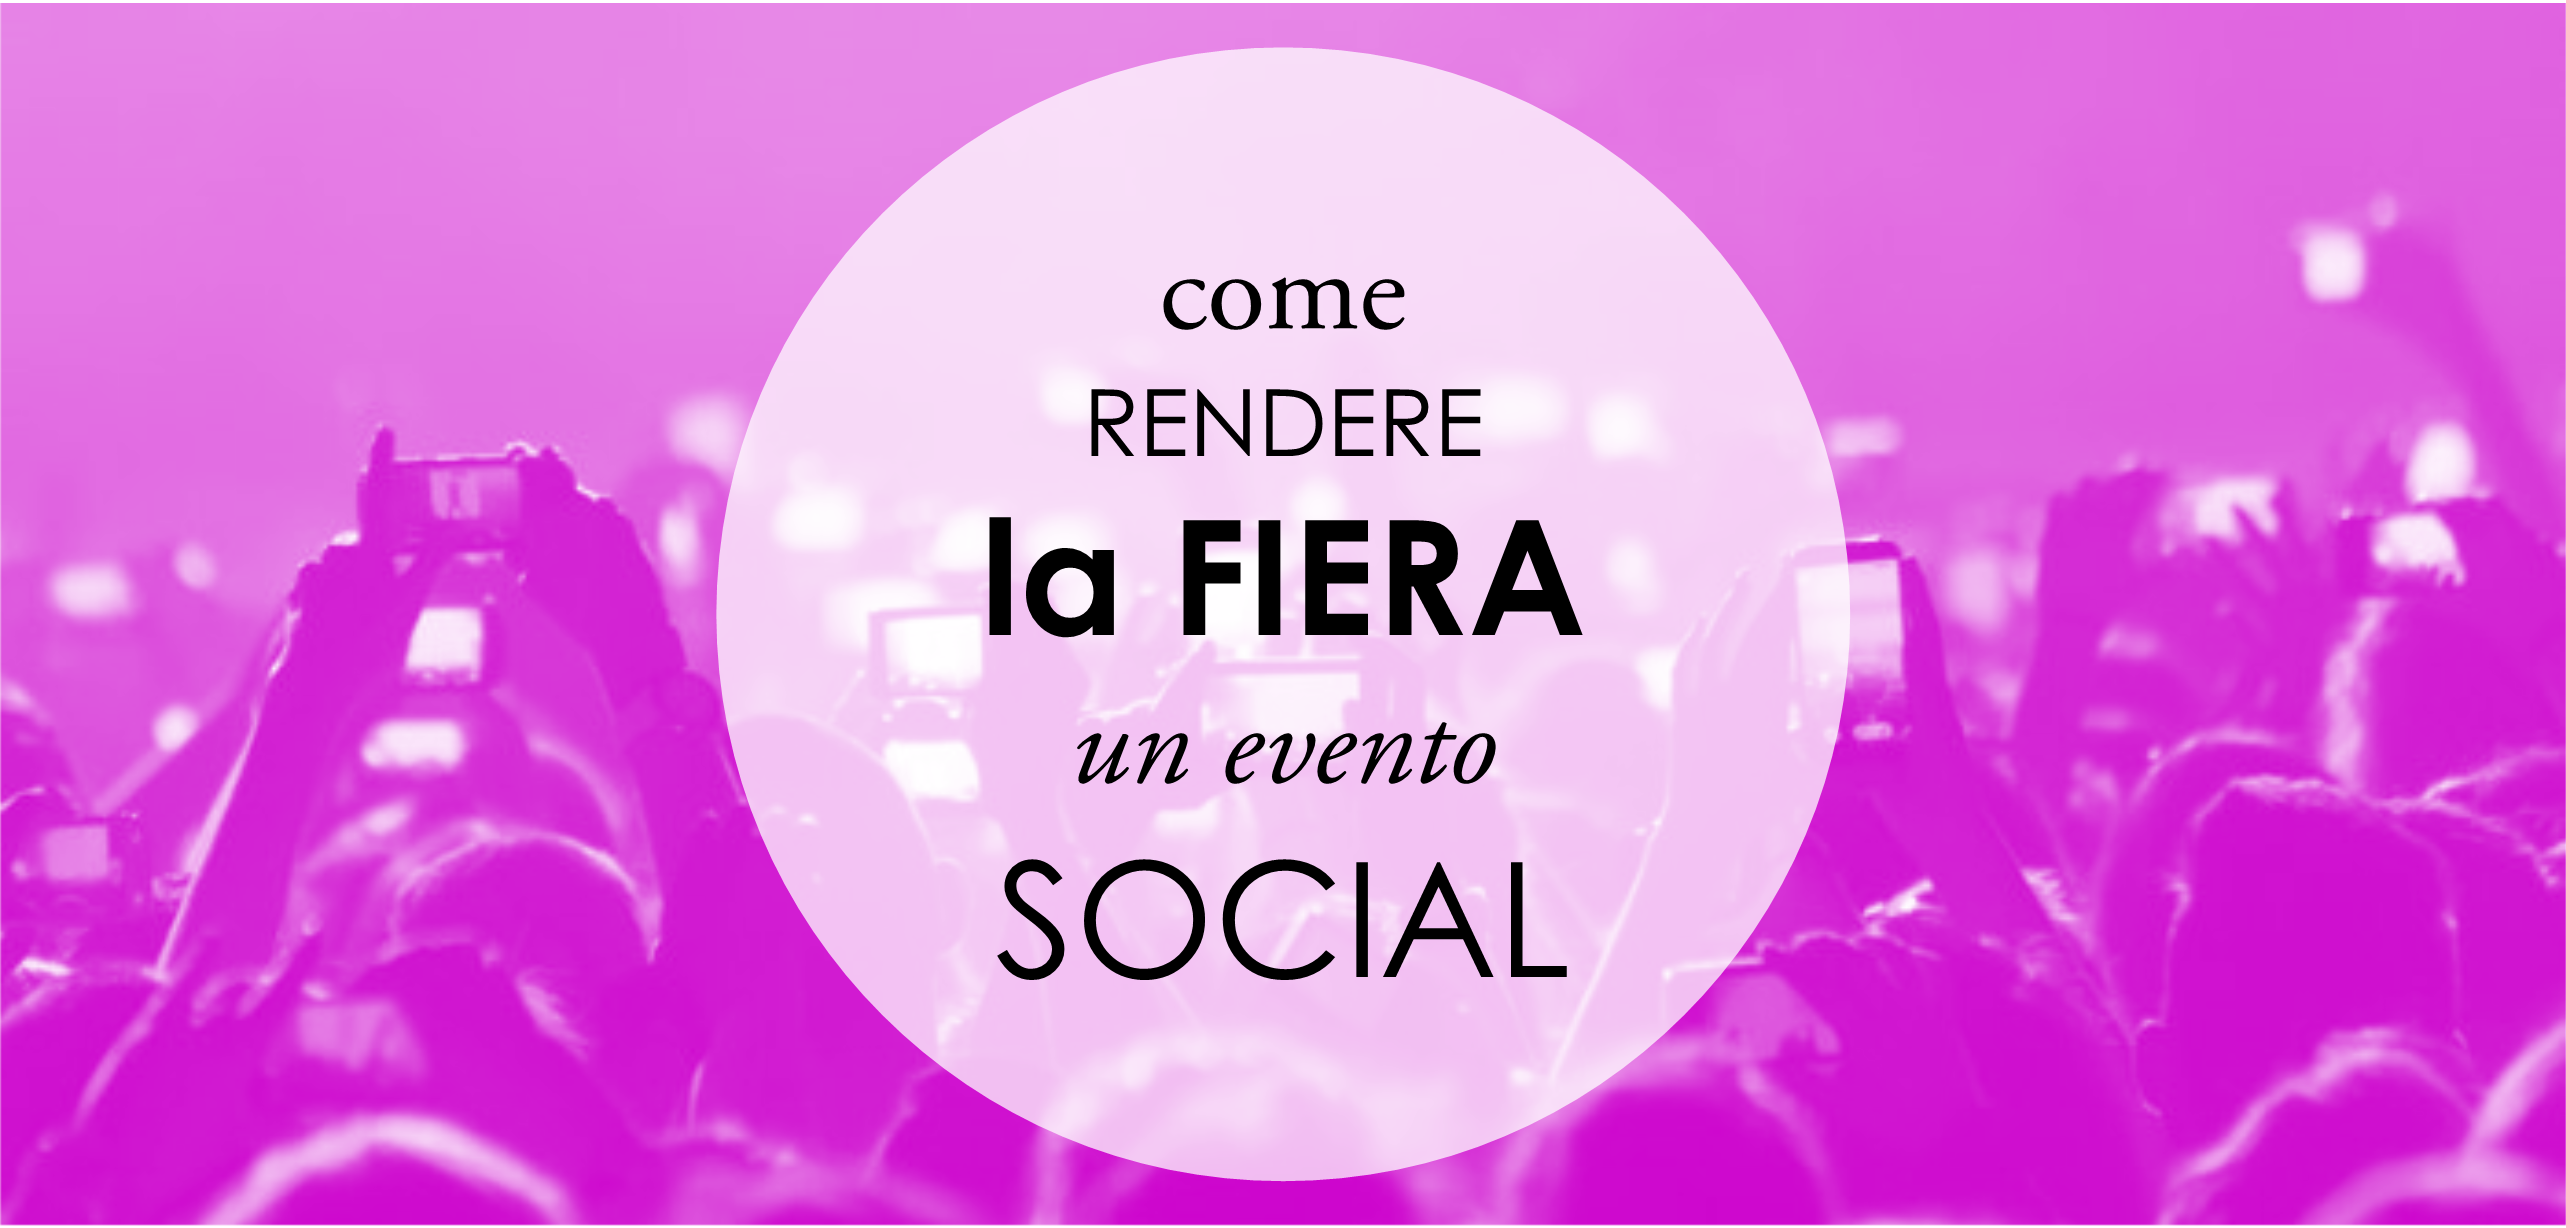 come-rendere-la-fiera-un-evento-social.png